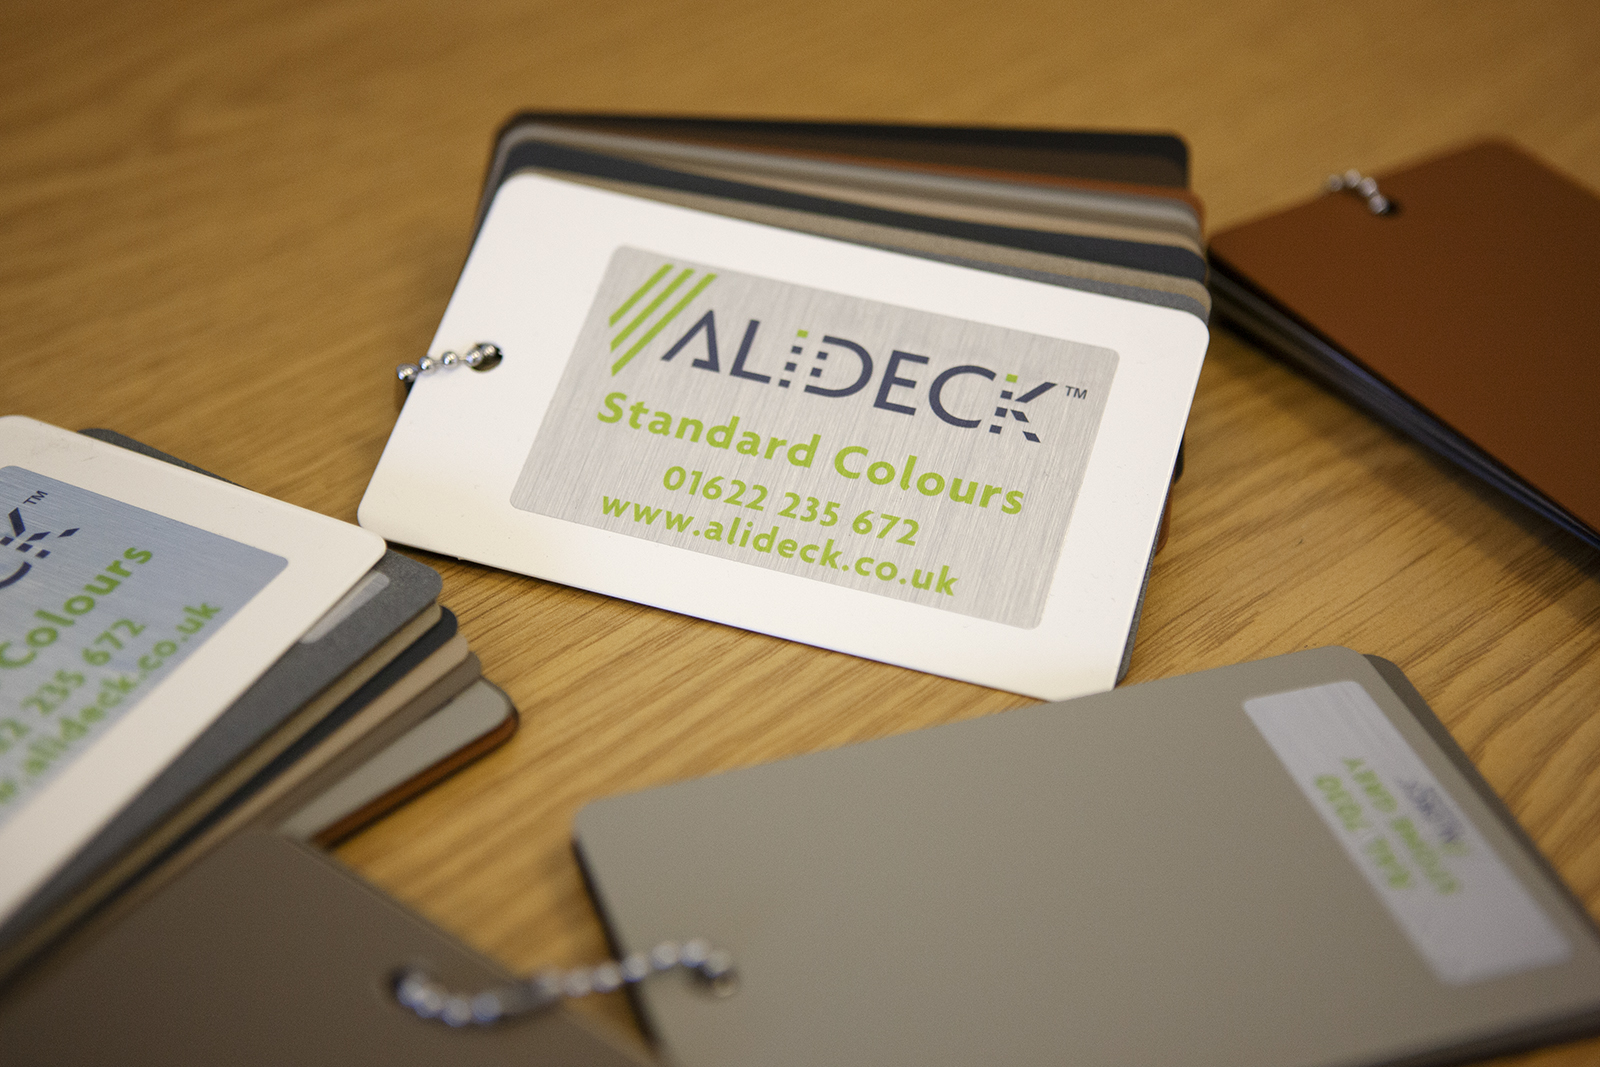 AliDeck Non-Combustible Aluminium Decking Standard Colours Swatch